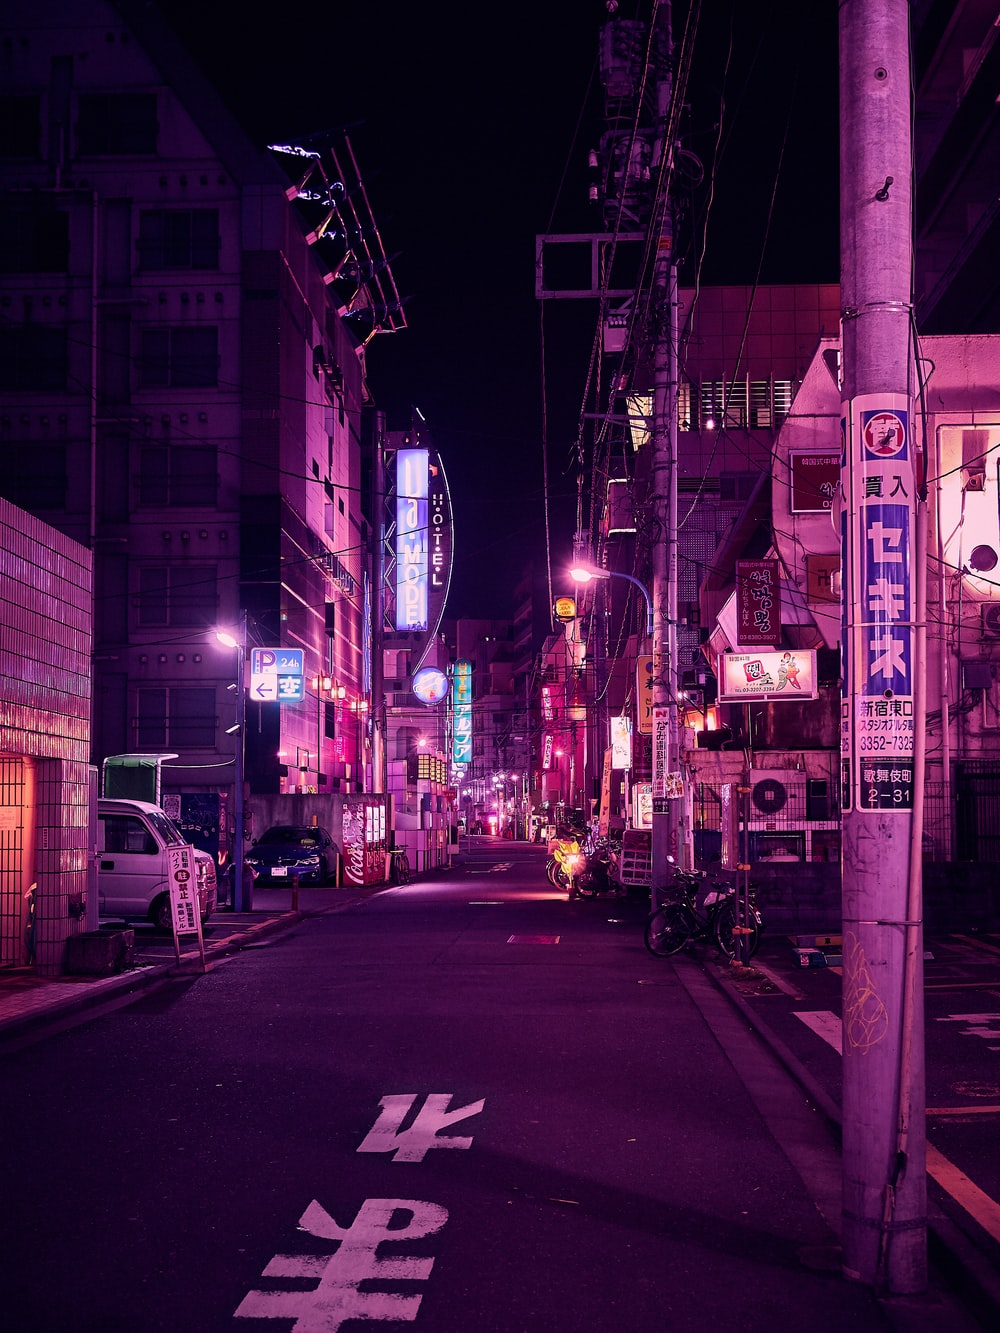 100 Tokyo Pictures Scenic Travel Photos Download Free Images On Unsplash